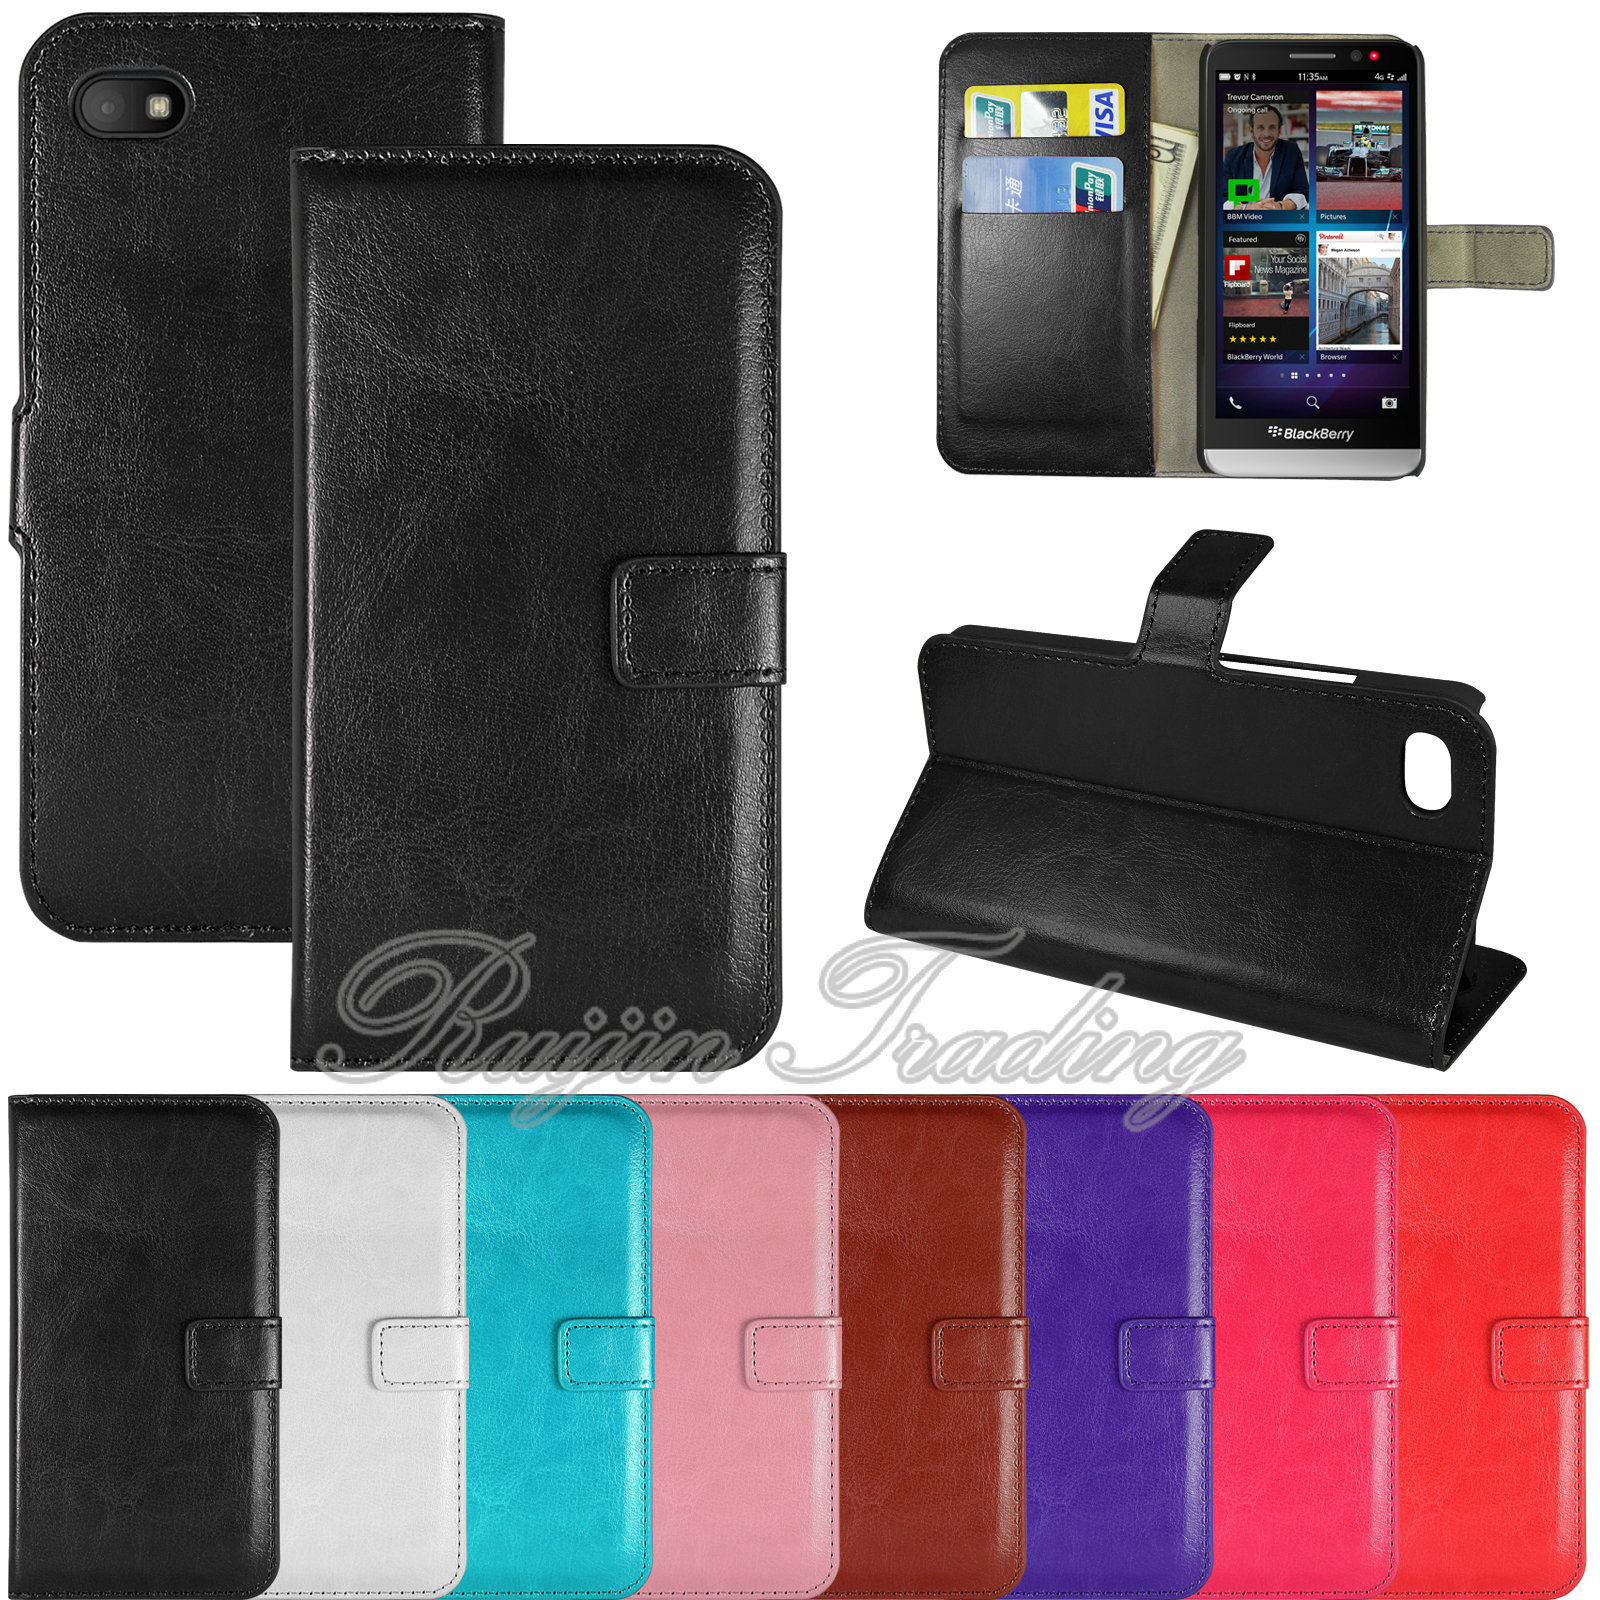 Case Design swees phone case : Cell Phone Case Protective Cover Leather Flip Silicone Tpu Wallet ...